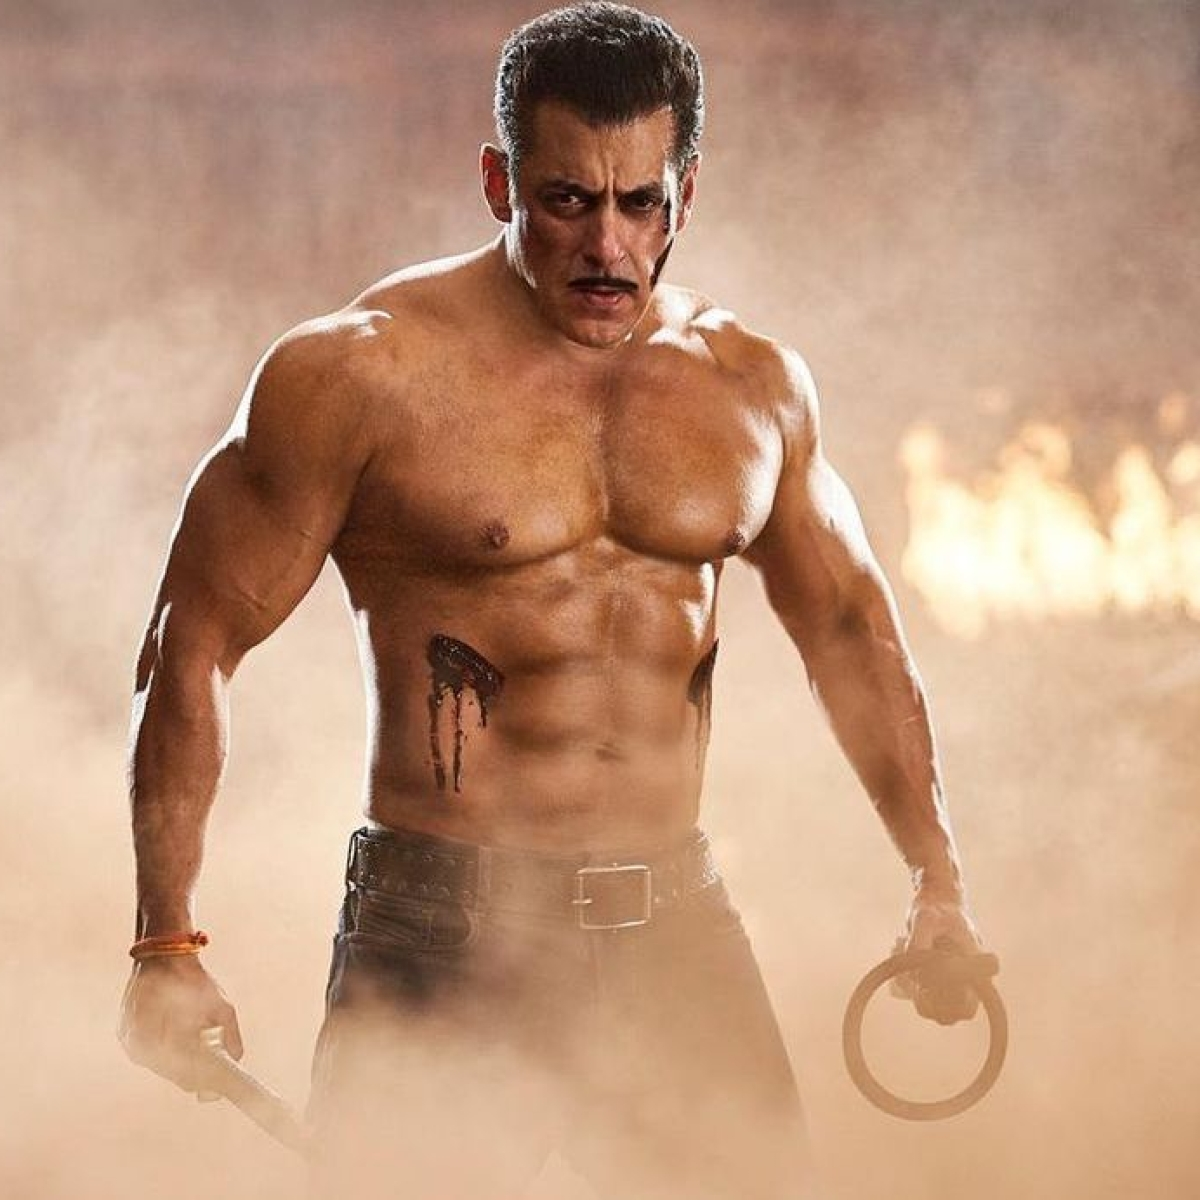 '3 films of mine are ready for release': Salman Khan